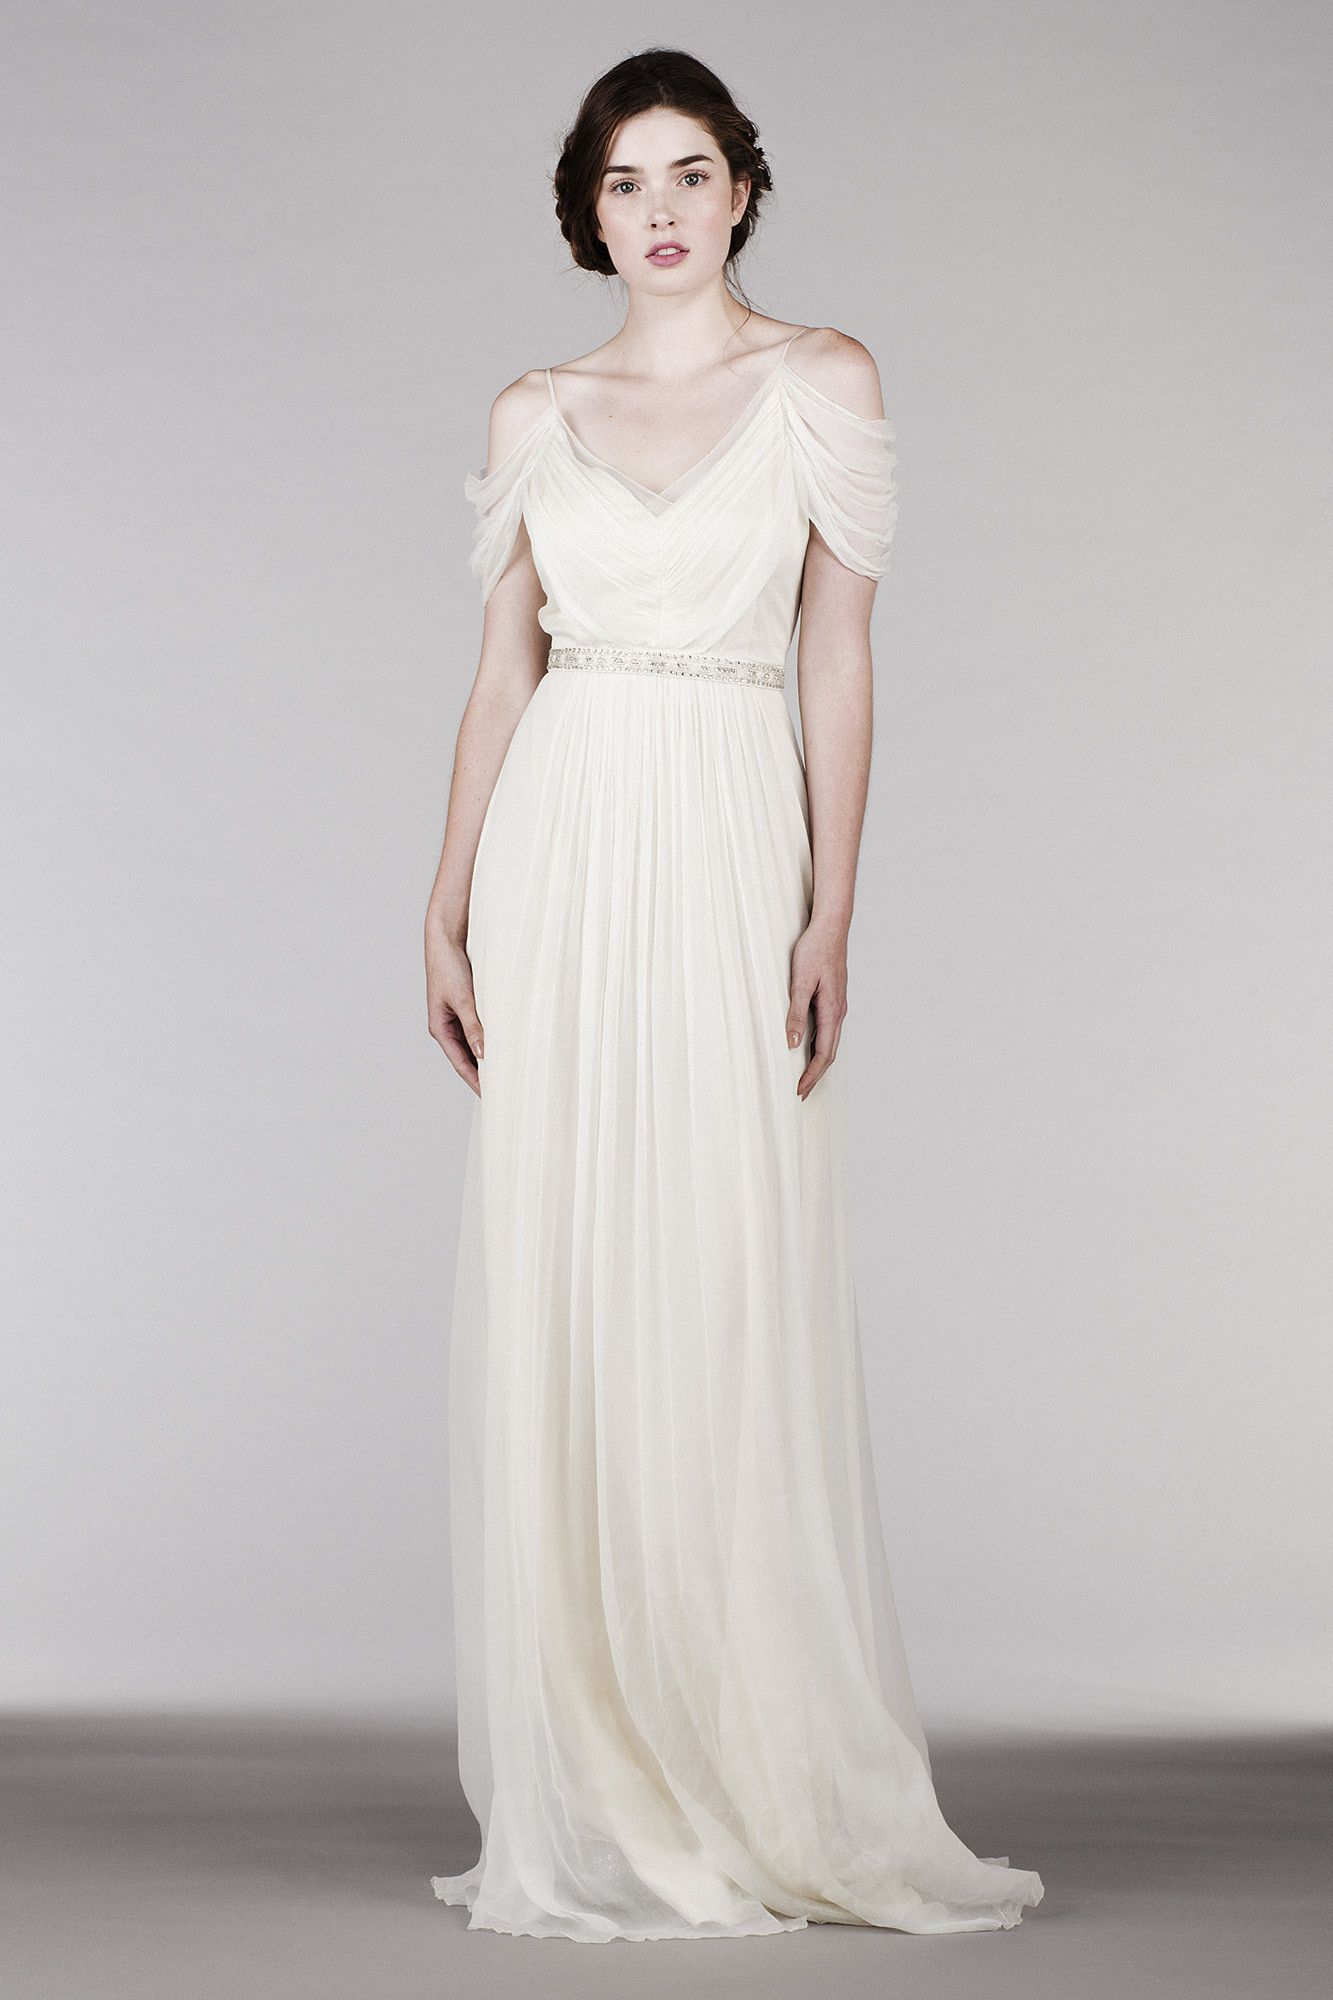 Hb ethereal wedding dress drama romantic and shoulder